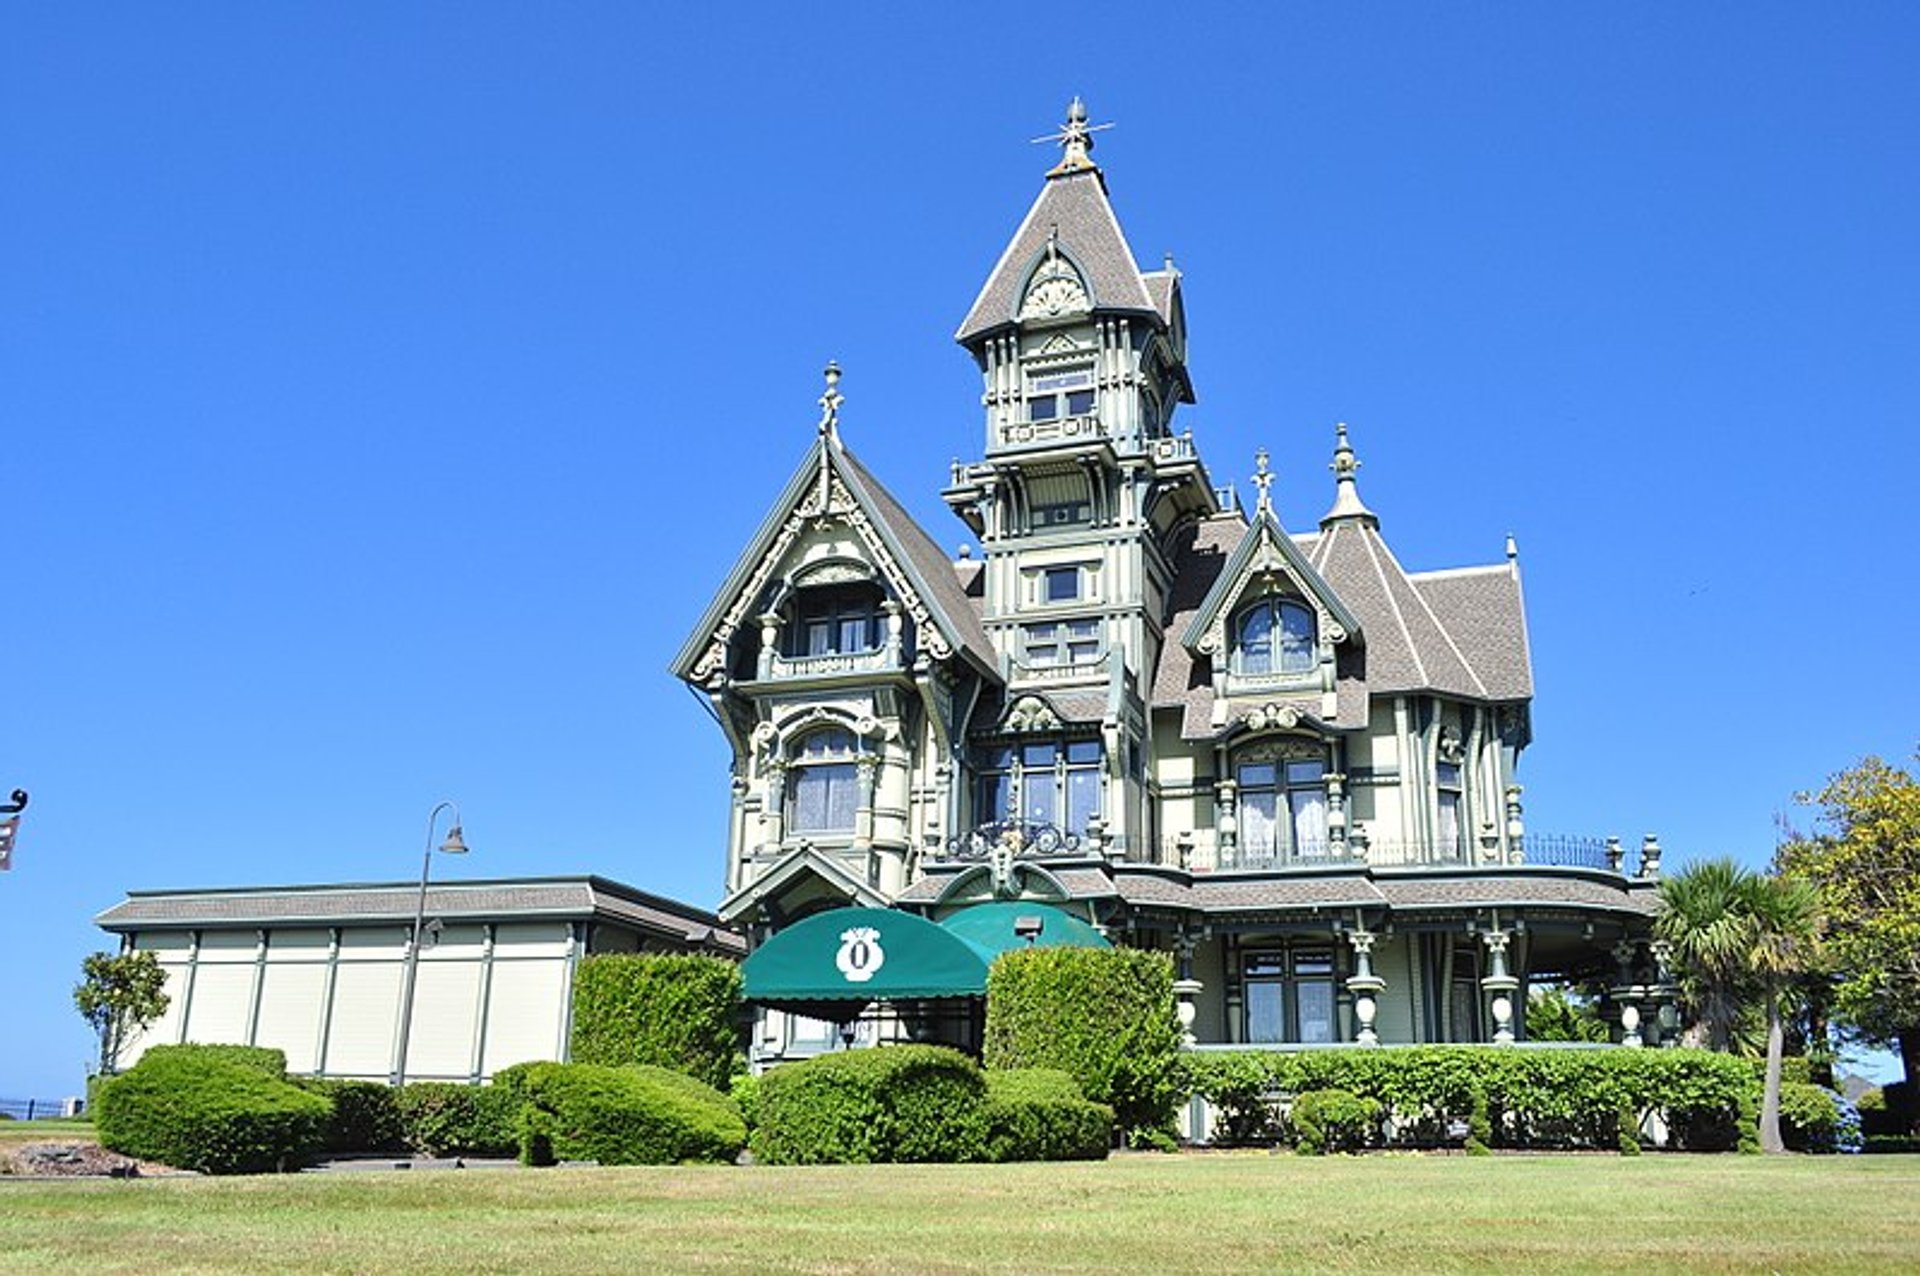 Carson Mansion in California 2020 - Best Time